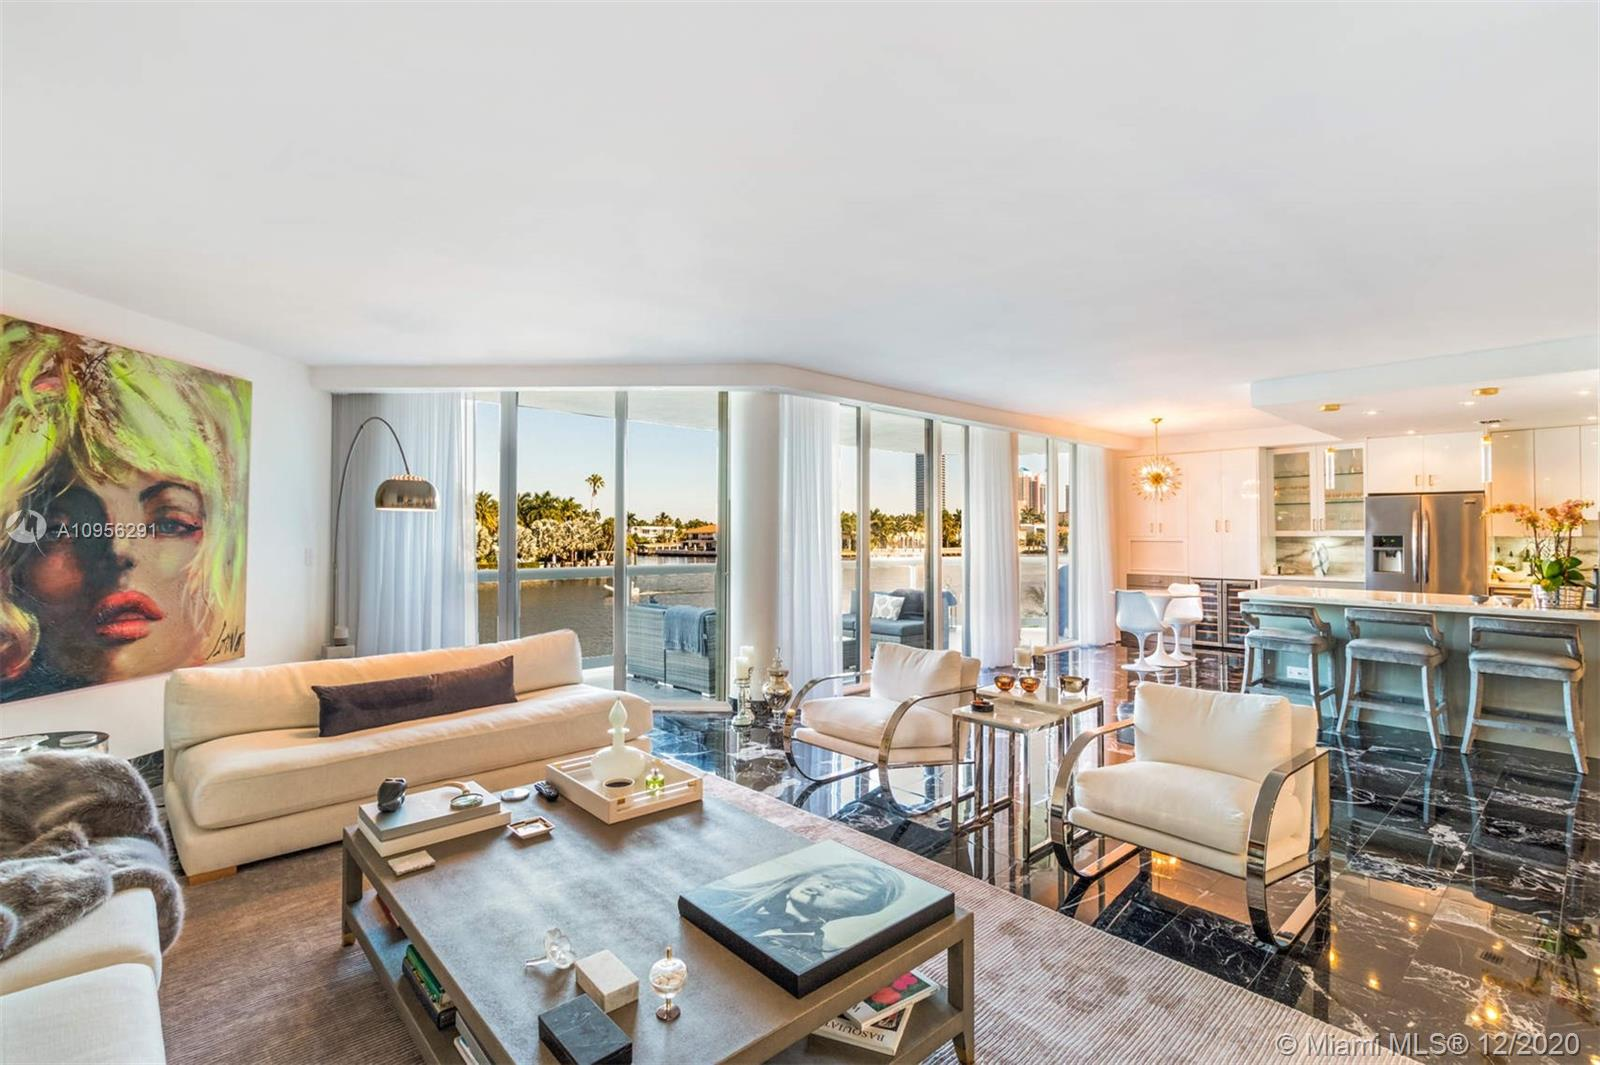 Completely remodeled 3 bed / 3 bath townhome located at The Terraces at Turnberry with endless views down the intracoastal waterway. Enjoy the privacy of a townhome with all of the community amenities including pool area with service, 2 fitness centers with sauna, tennis / racquetball courts and a cafe. Seller owns a Private Pool Cabana that can be purchased with the sale. The community is located minutes from Aventura Mall, Turnberry Resort, Gulfstream Park and the beaches.